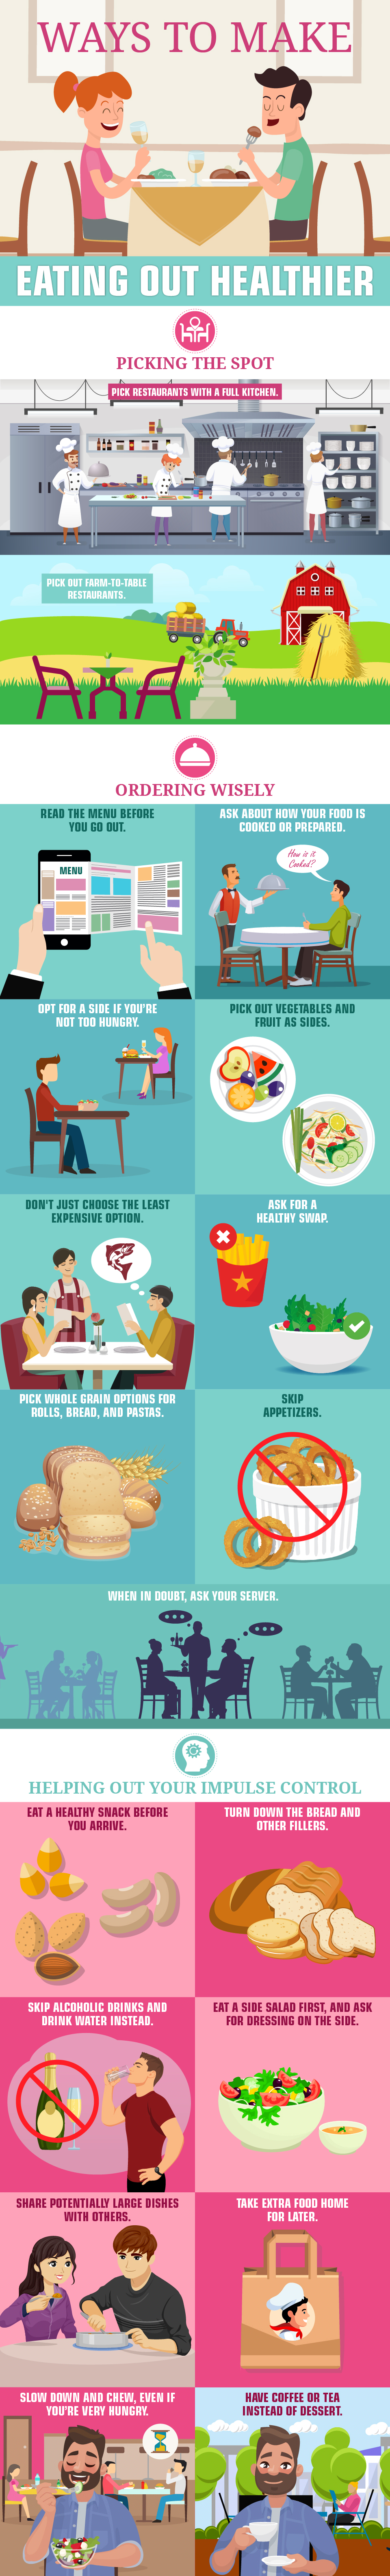 Ways to Make Eating Out Healthier